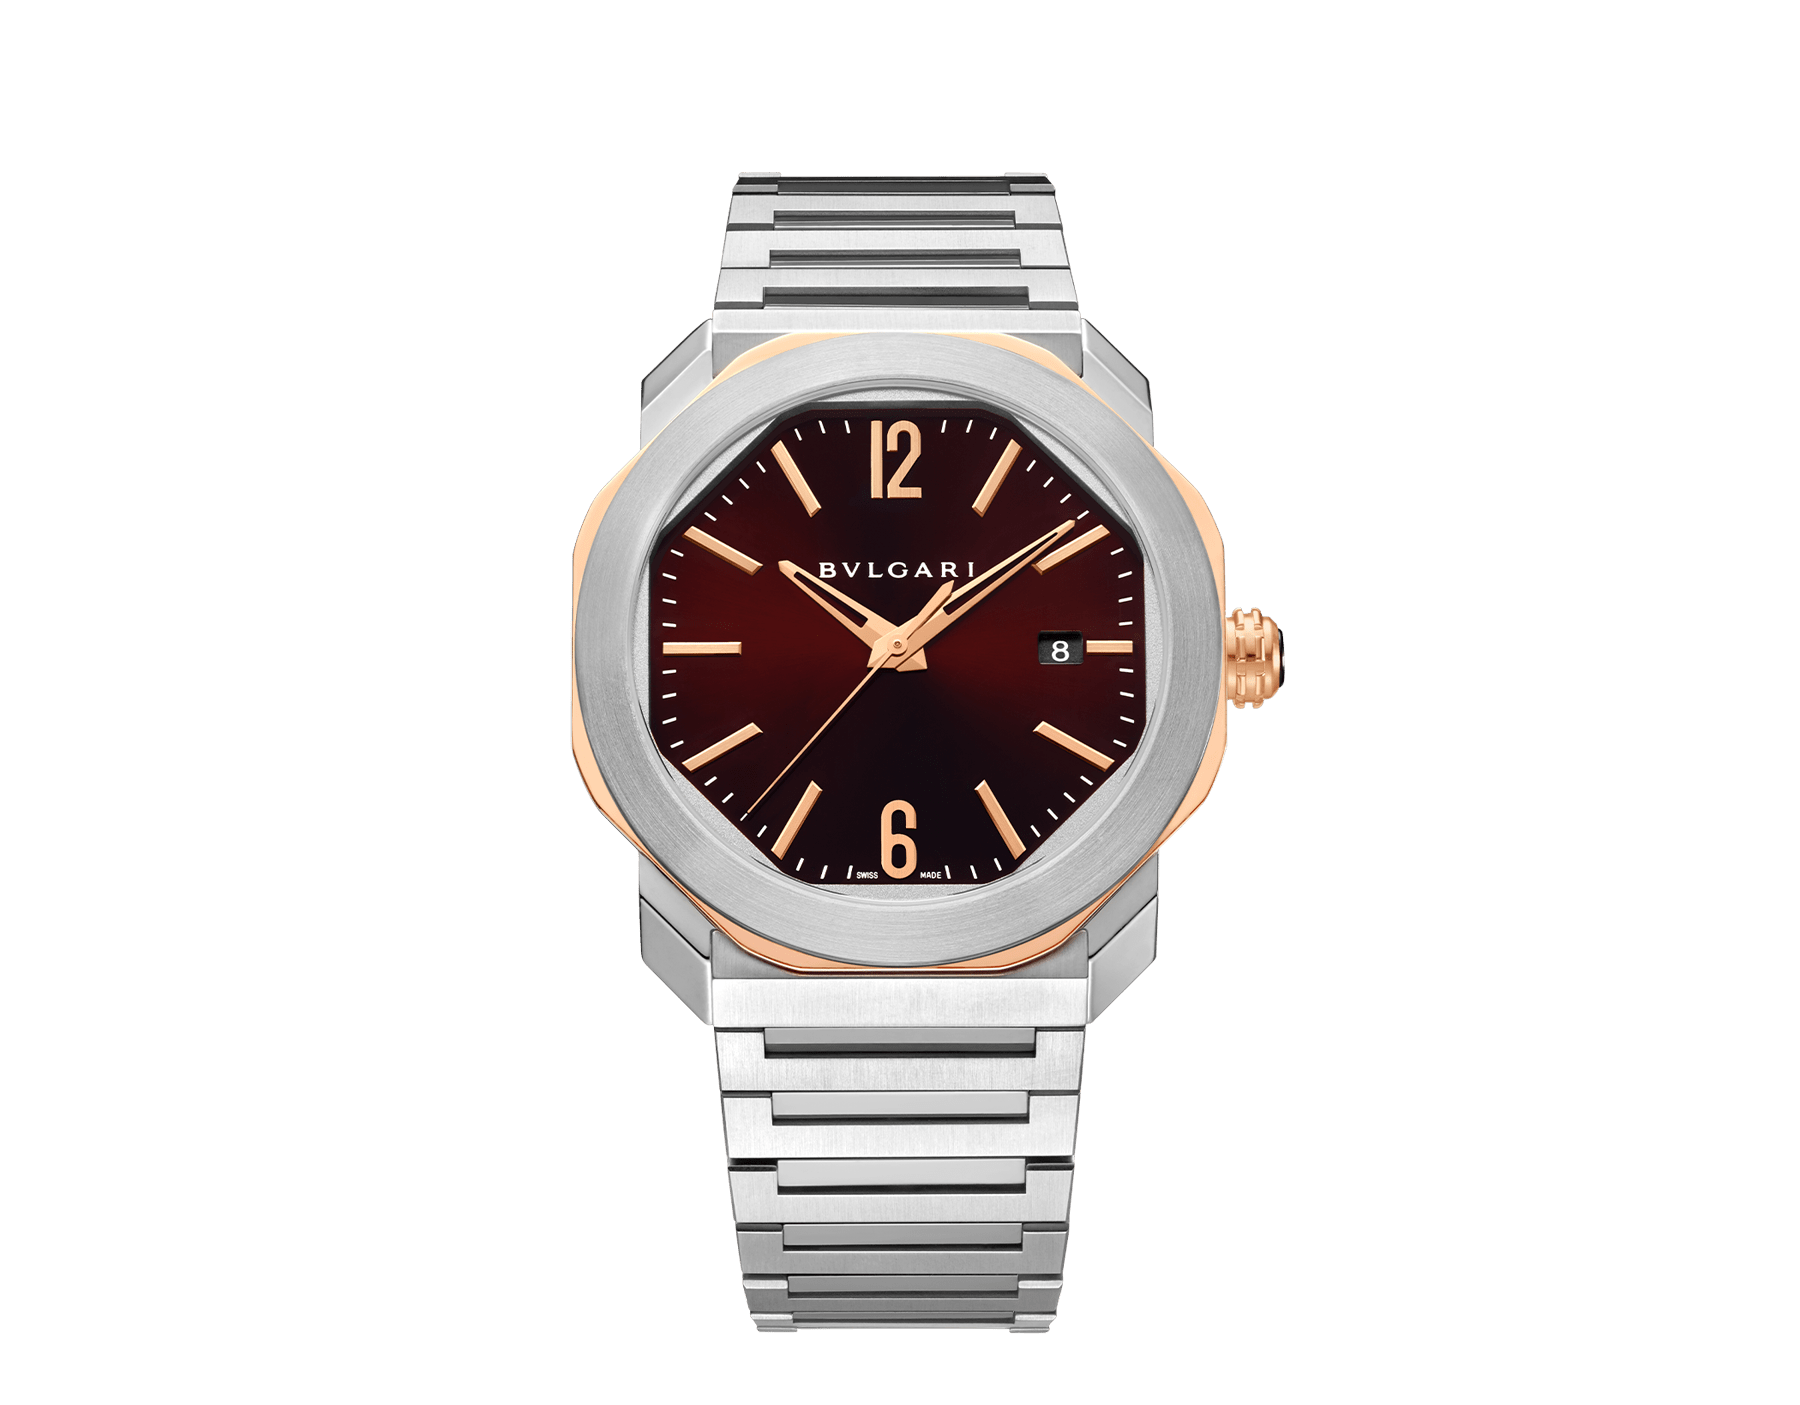 Octo Roma watch with mechanical manufacture movement, automatic winding, stainless steel case and bracelet, 18 kt rose gold octagon and brown dial. Water-resistant up to 50 meters. 103210 image 1